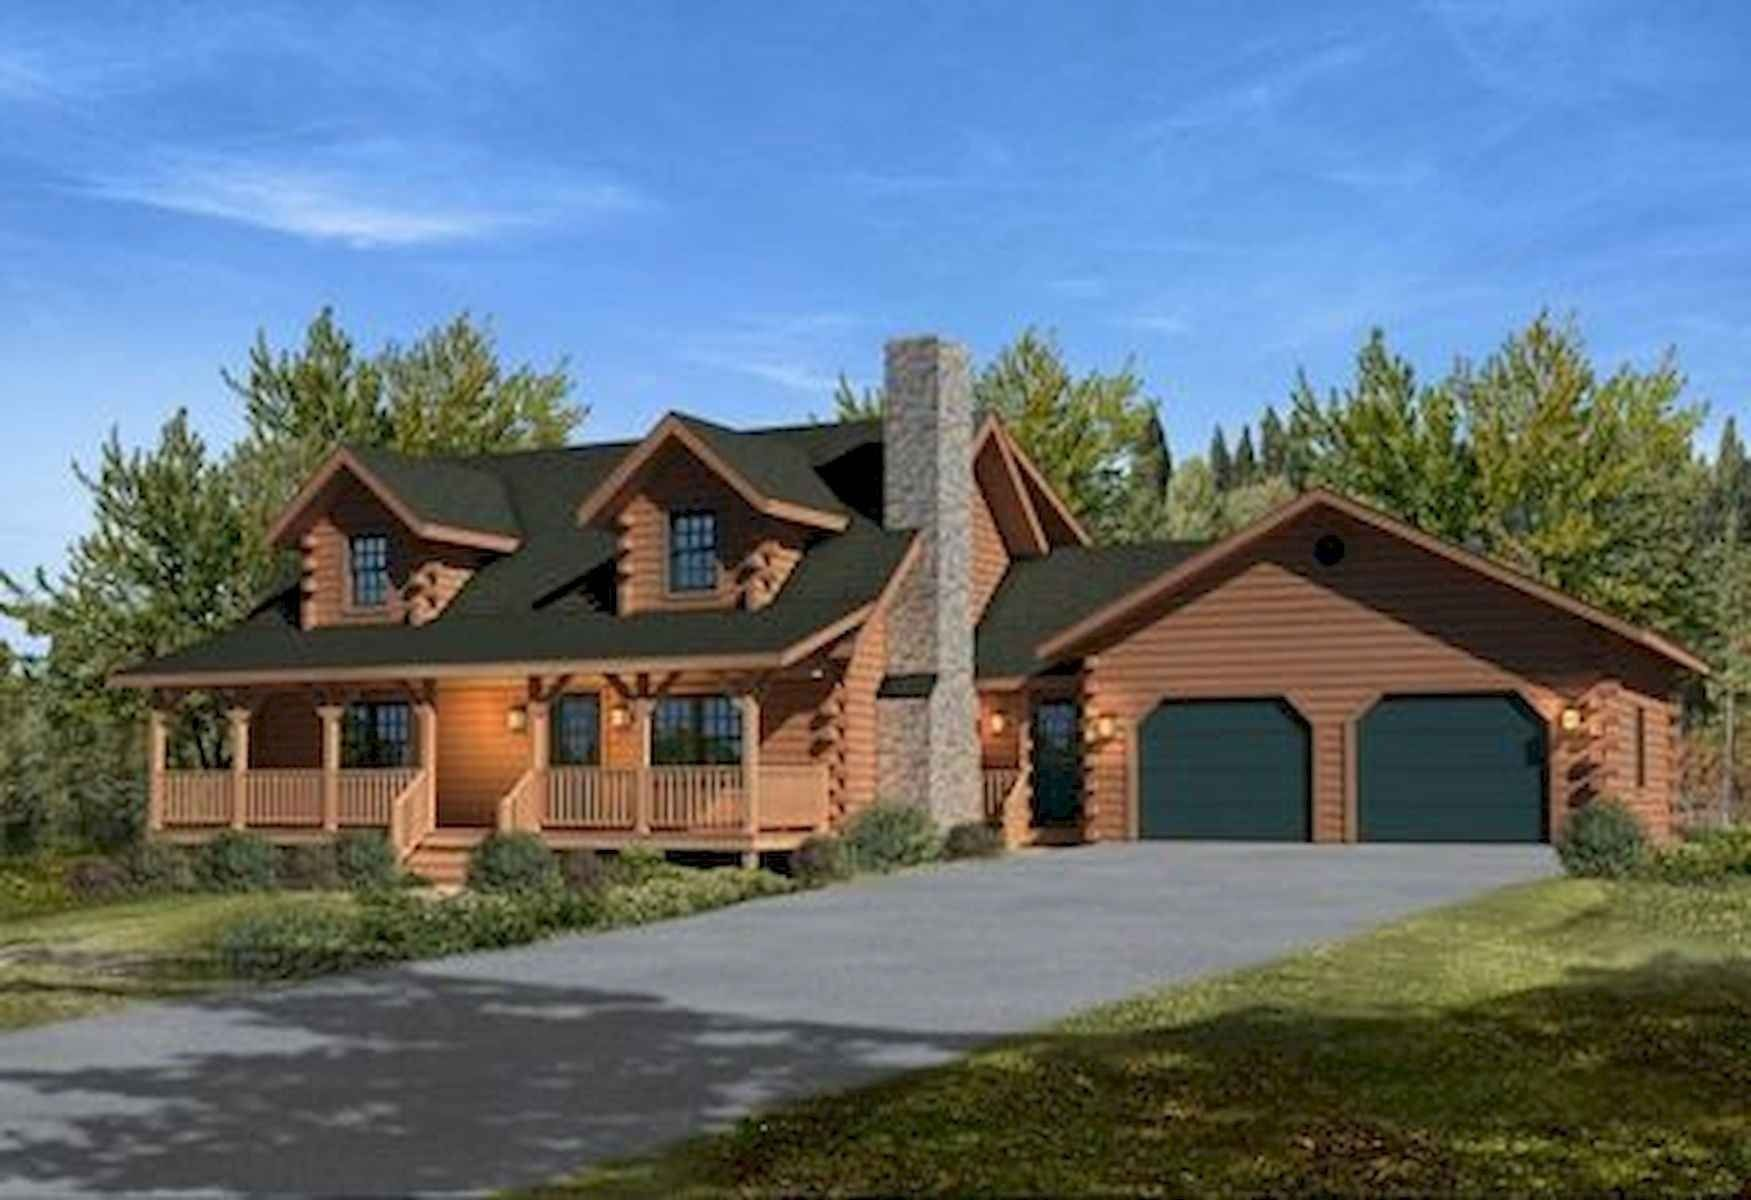 75 Best Log Cabin Homes Plans Design Ideas Log Cabin Homes Log Cabin Plans Cabin Homes